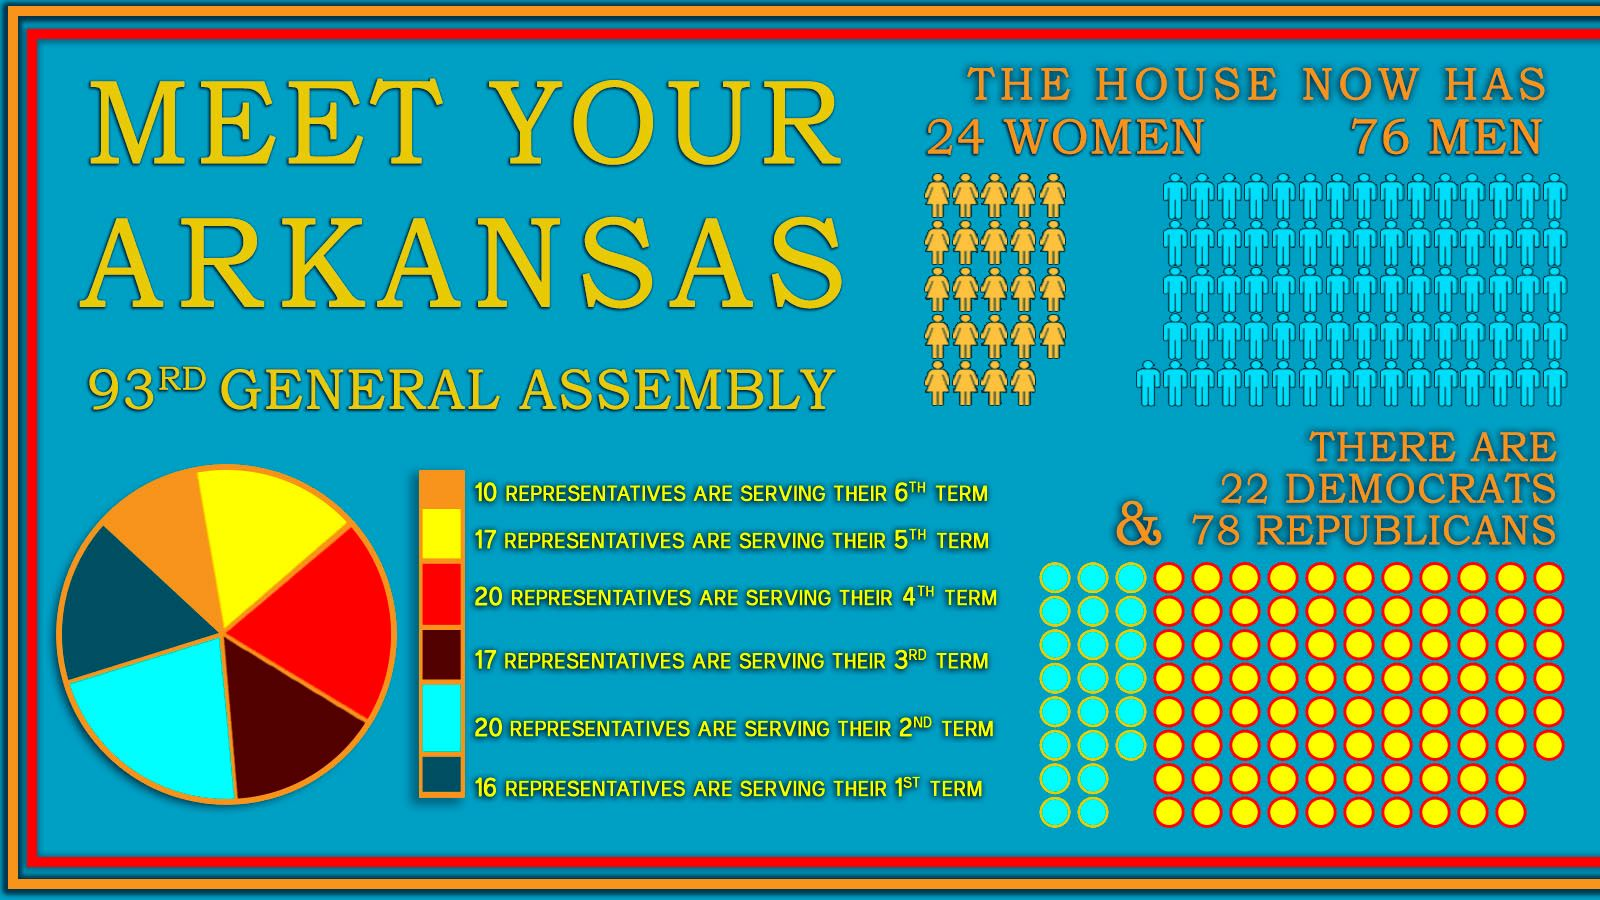 93rd General Assembly Seating Chart